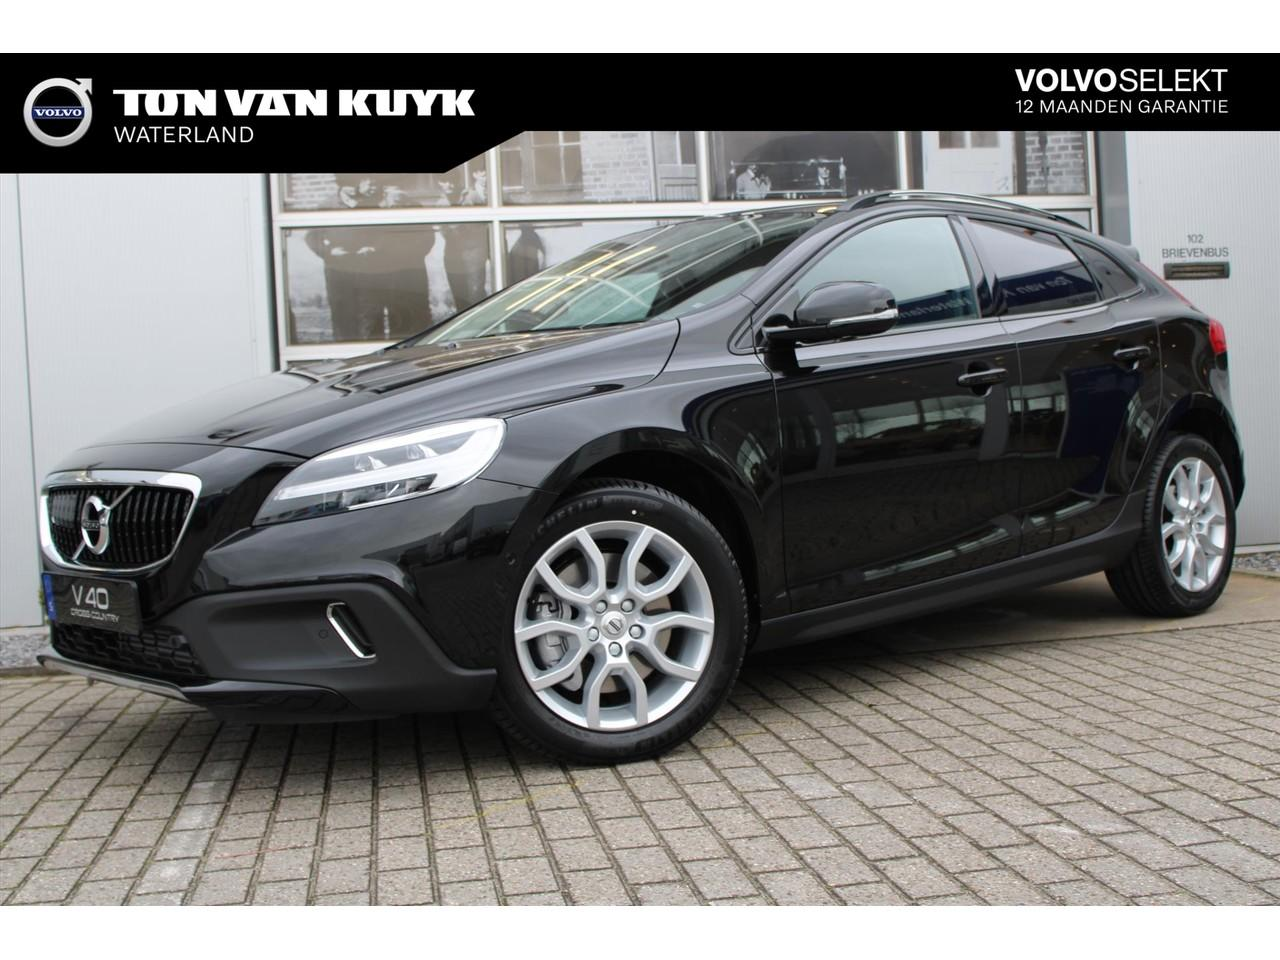 Volvo V40 cross country 1.5 t3 152pk aut. polar+ luxury / intelli safe / standkachel /